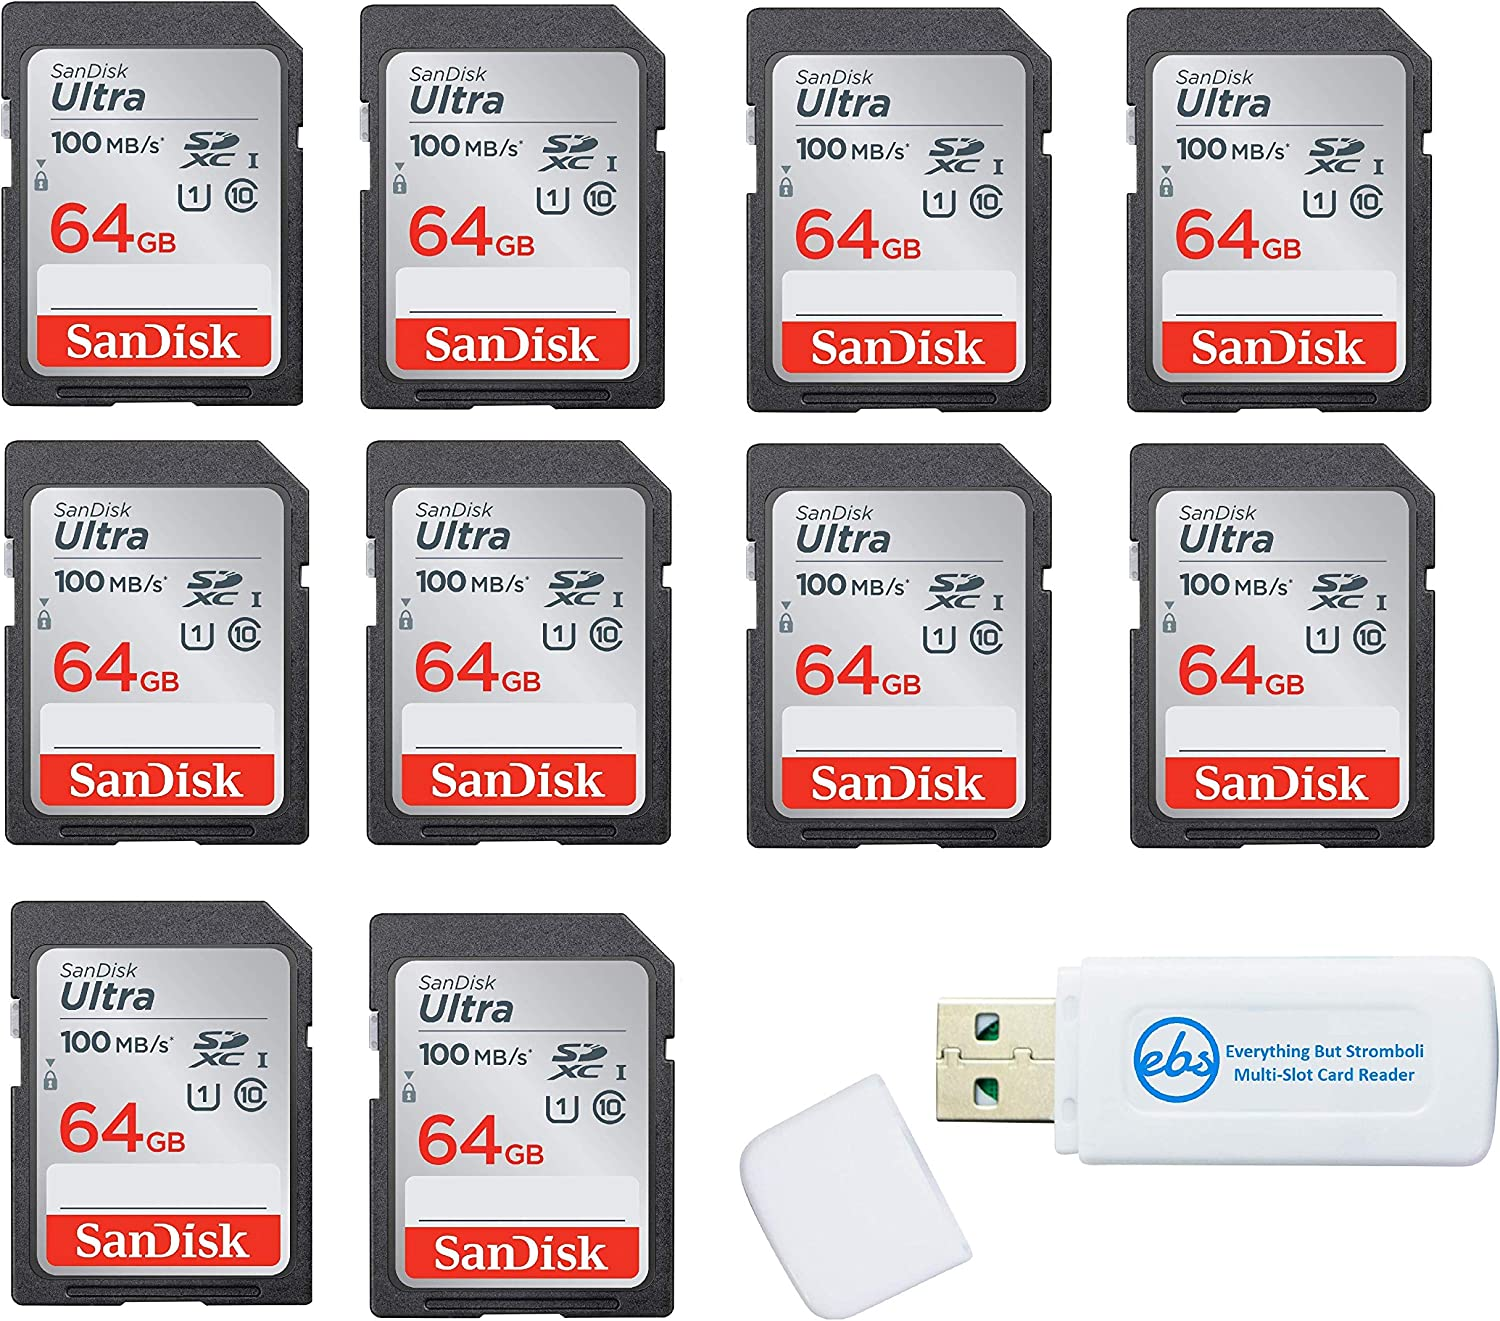 SanDisk 64GB SD Ultra Memory Card 10 Pack UHS-I Class 10 (SDSDUNR-064G-GN6IN) Bundle with (1) Everything But Stromboli Combo Card Reader